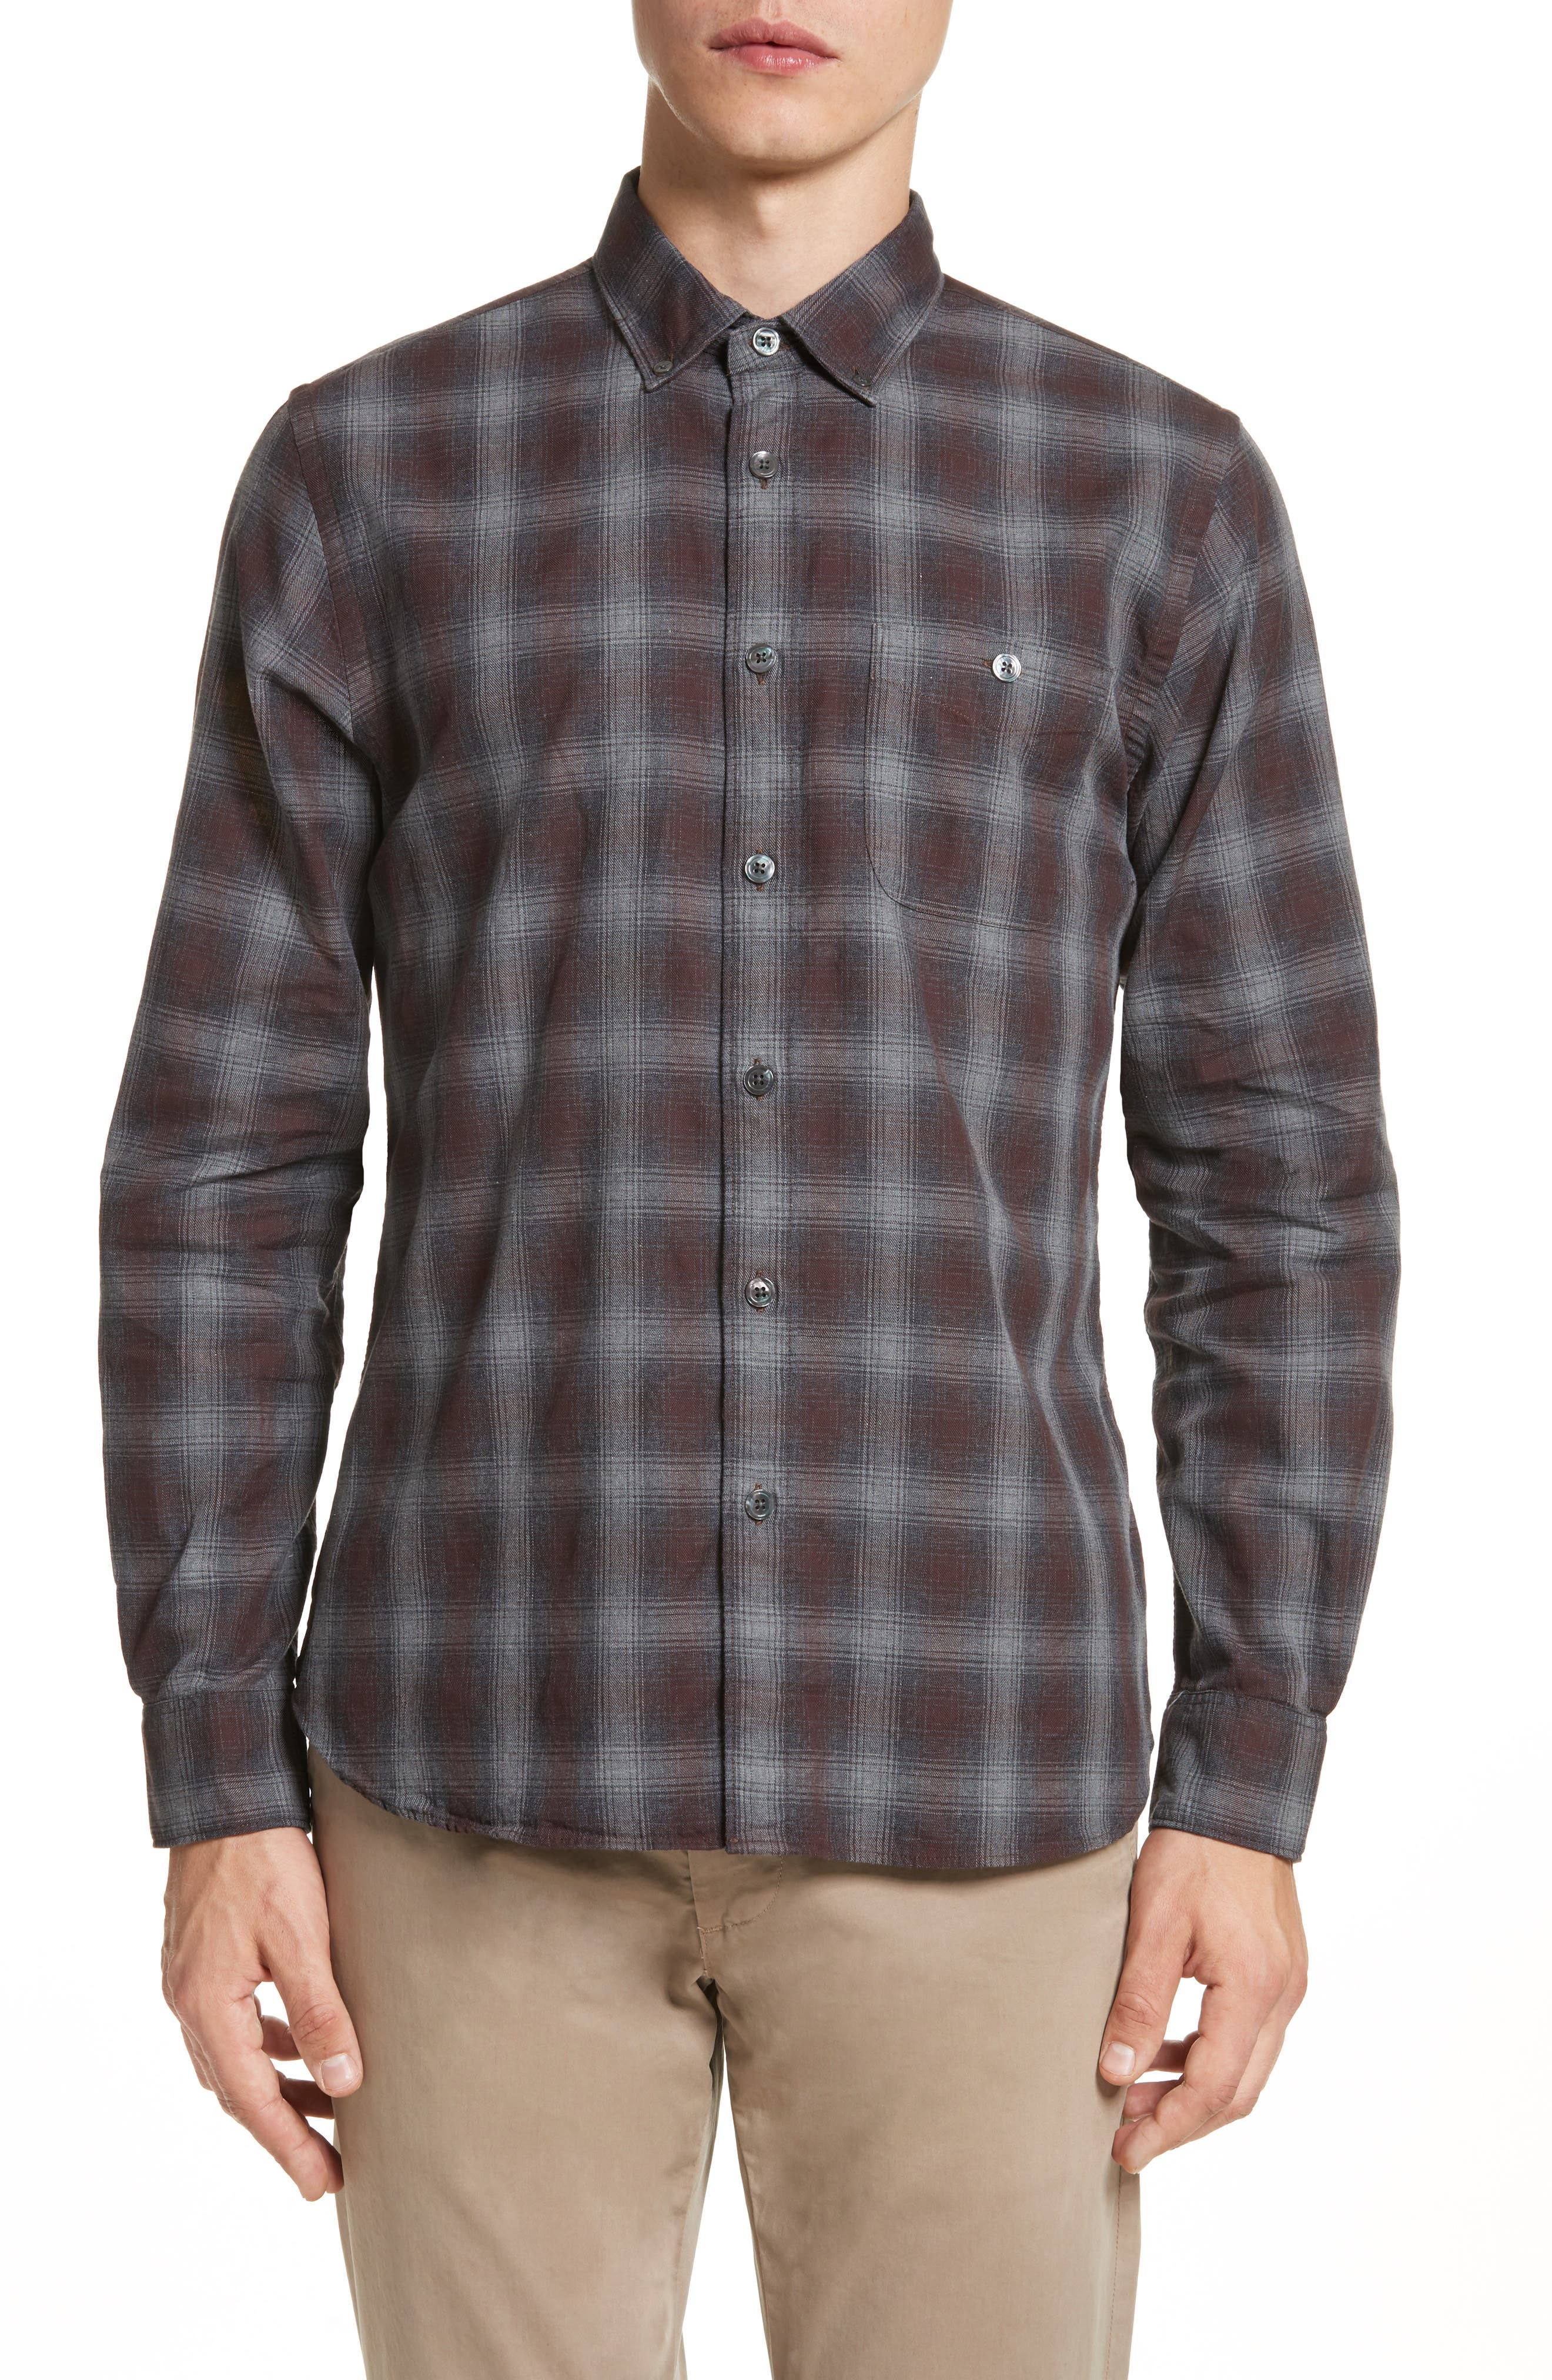 Todd Snyder Plaid Flannel Shirt